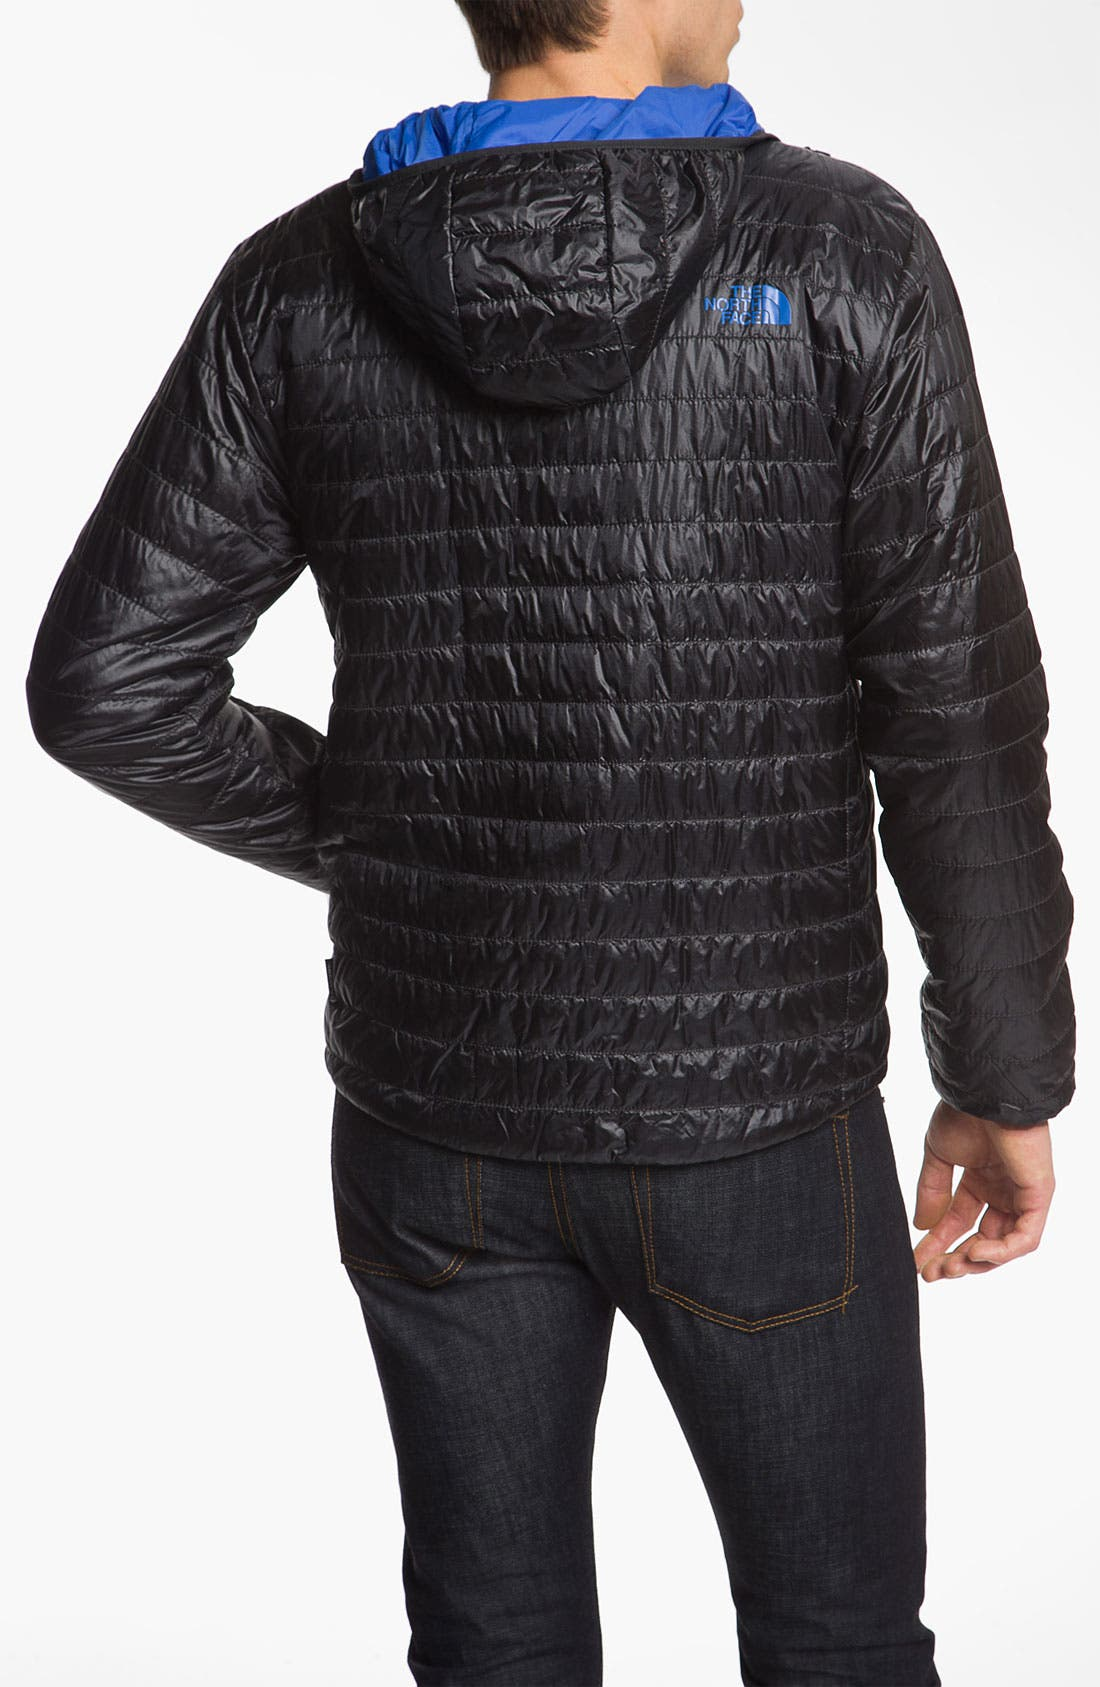 THE NORTH FACE,                             'Blaze' Jacket,                             Alternate thumbnail 2, color,                             020